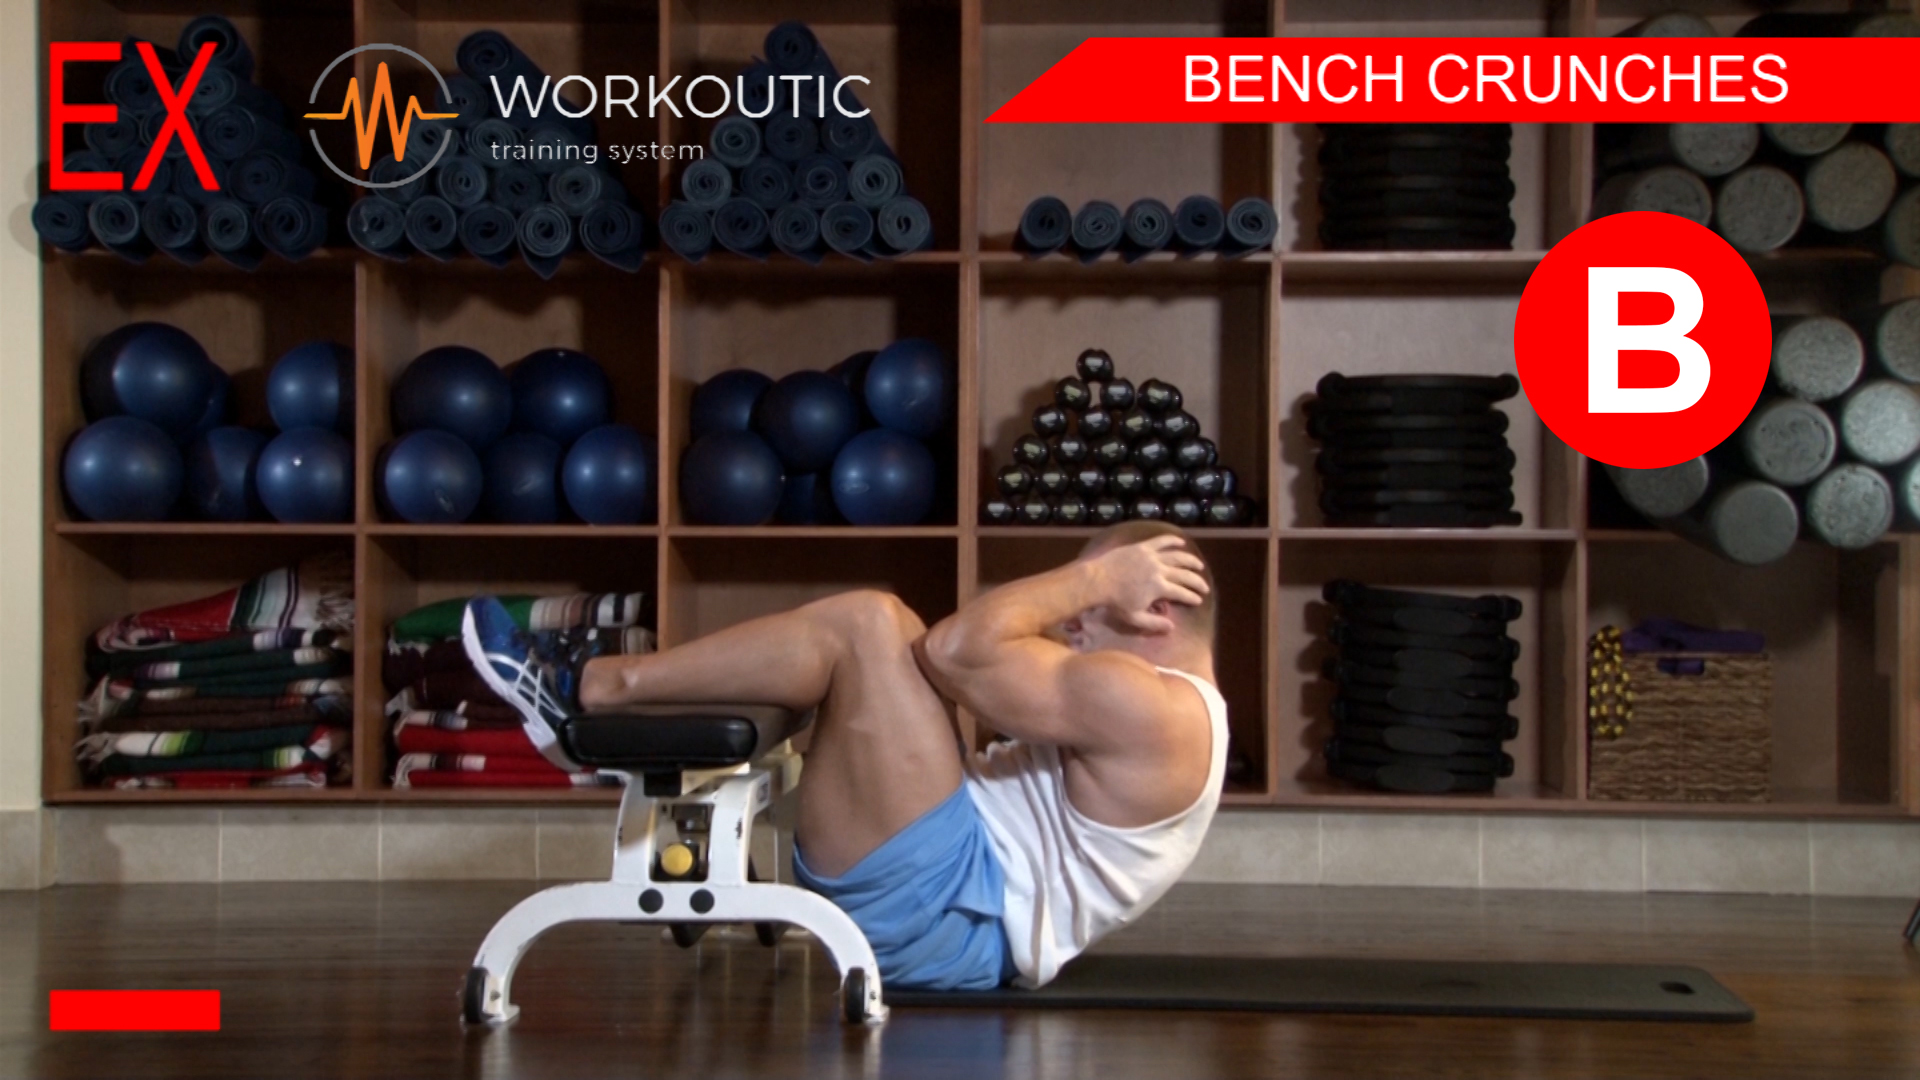 Abs Exercises - Workutic - 6 pack special - Bench Crunches Exhale